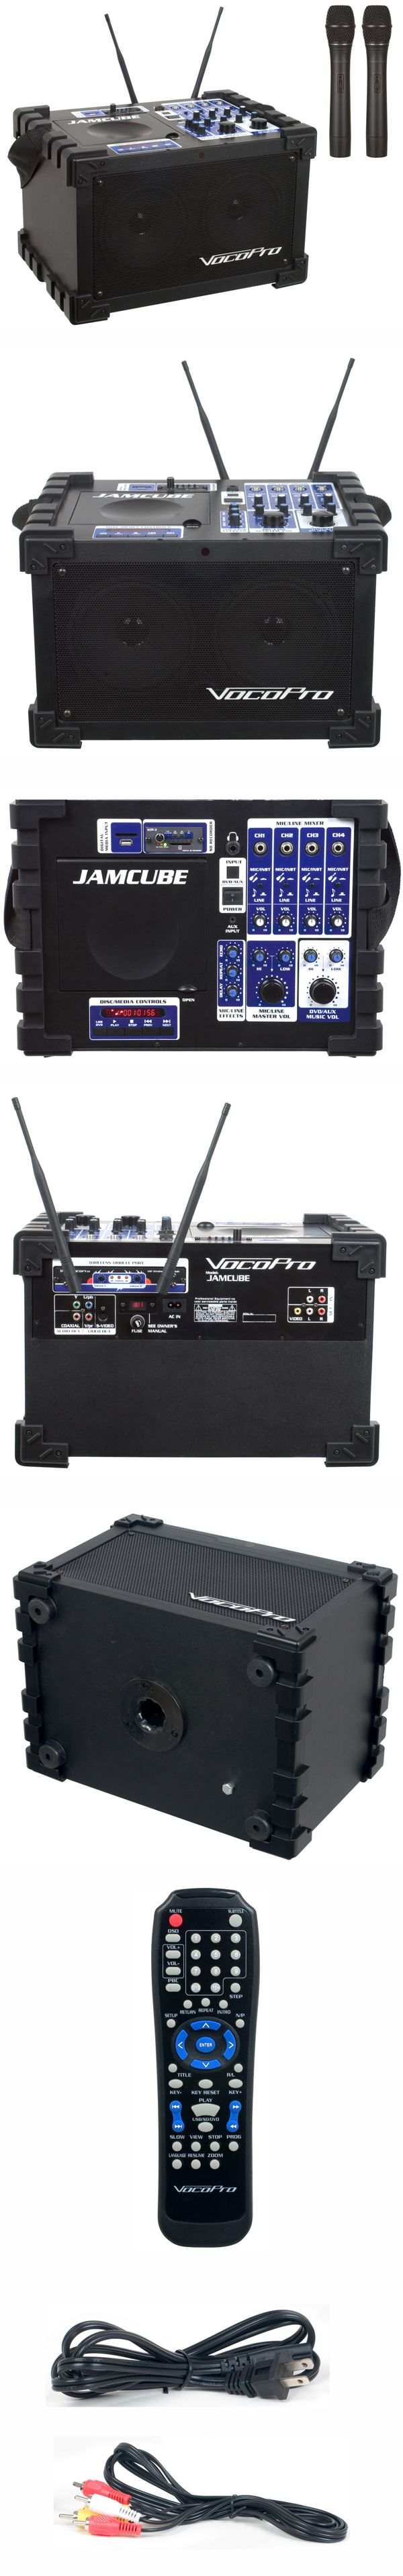 100W Stereo All-In-One Mini PA/Entertainment System (Set 3 - Freq A, B)